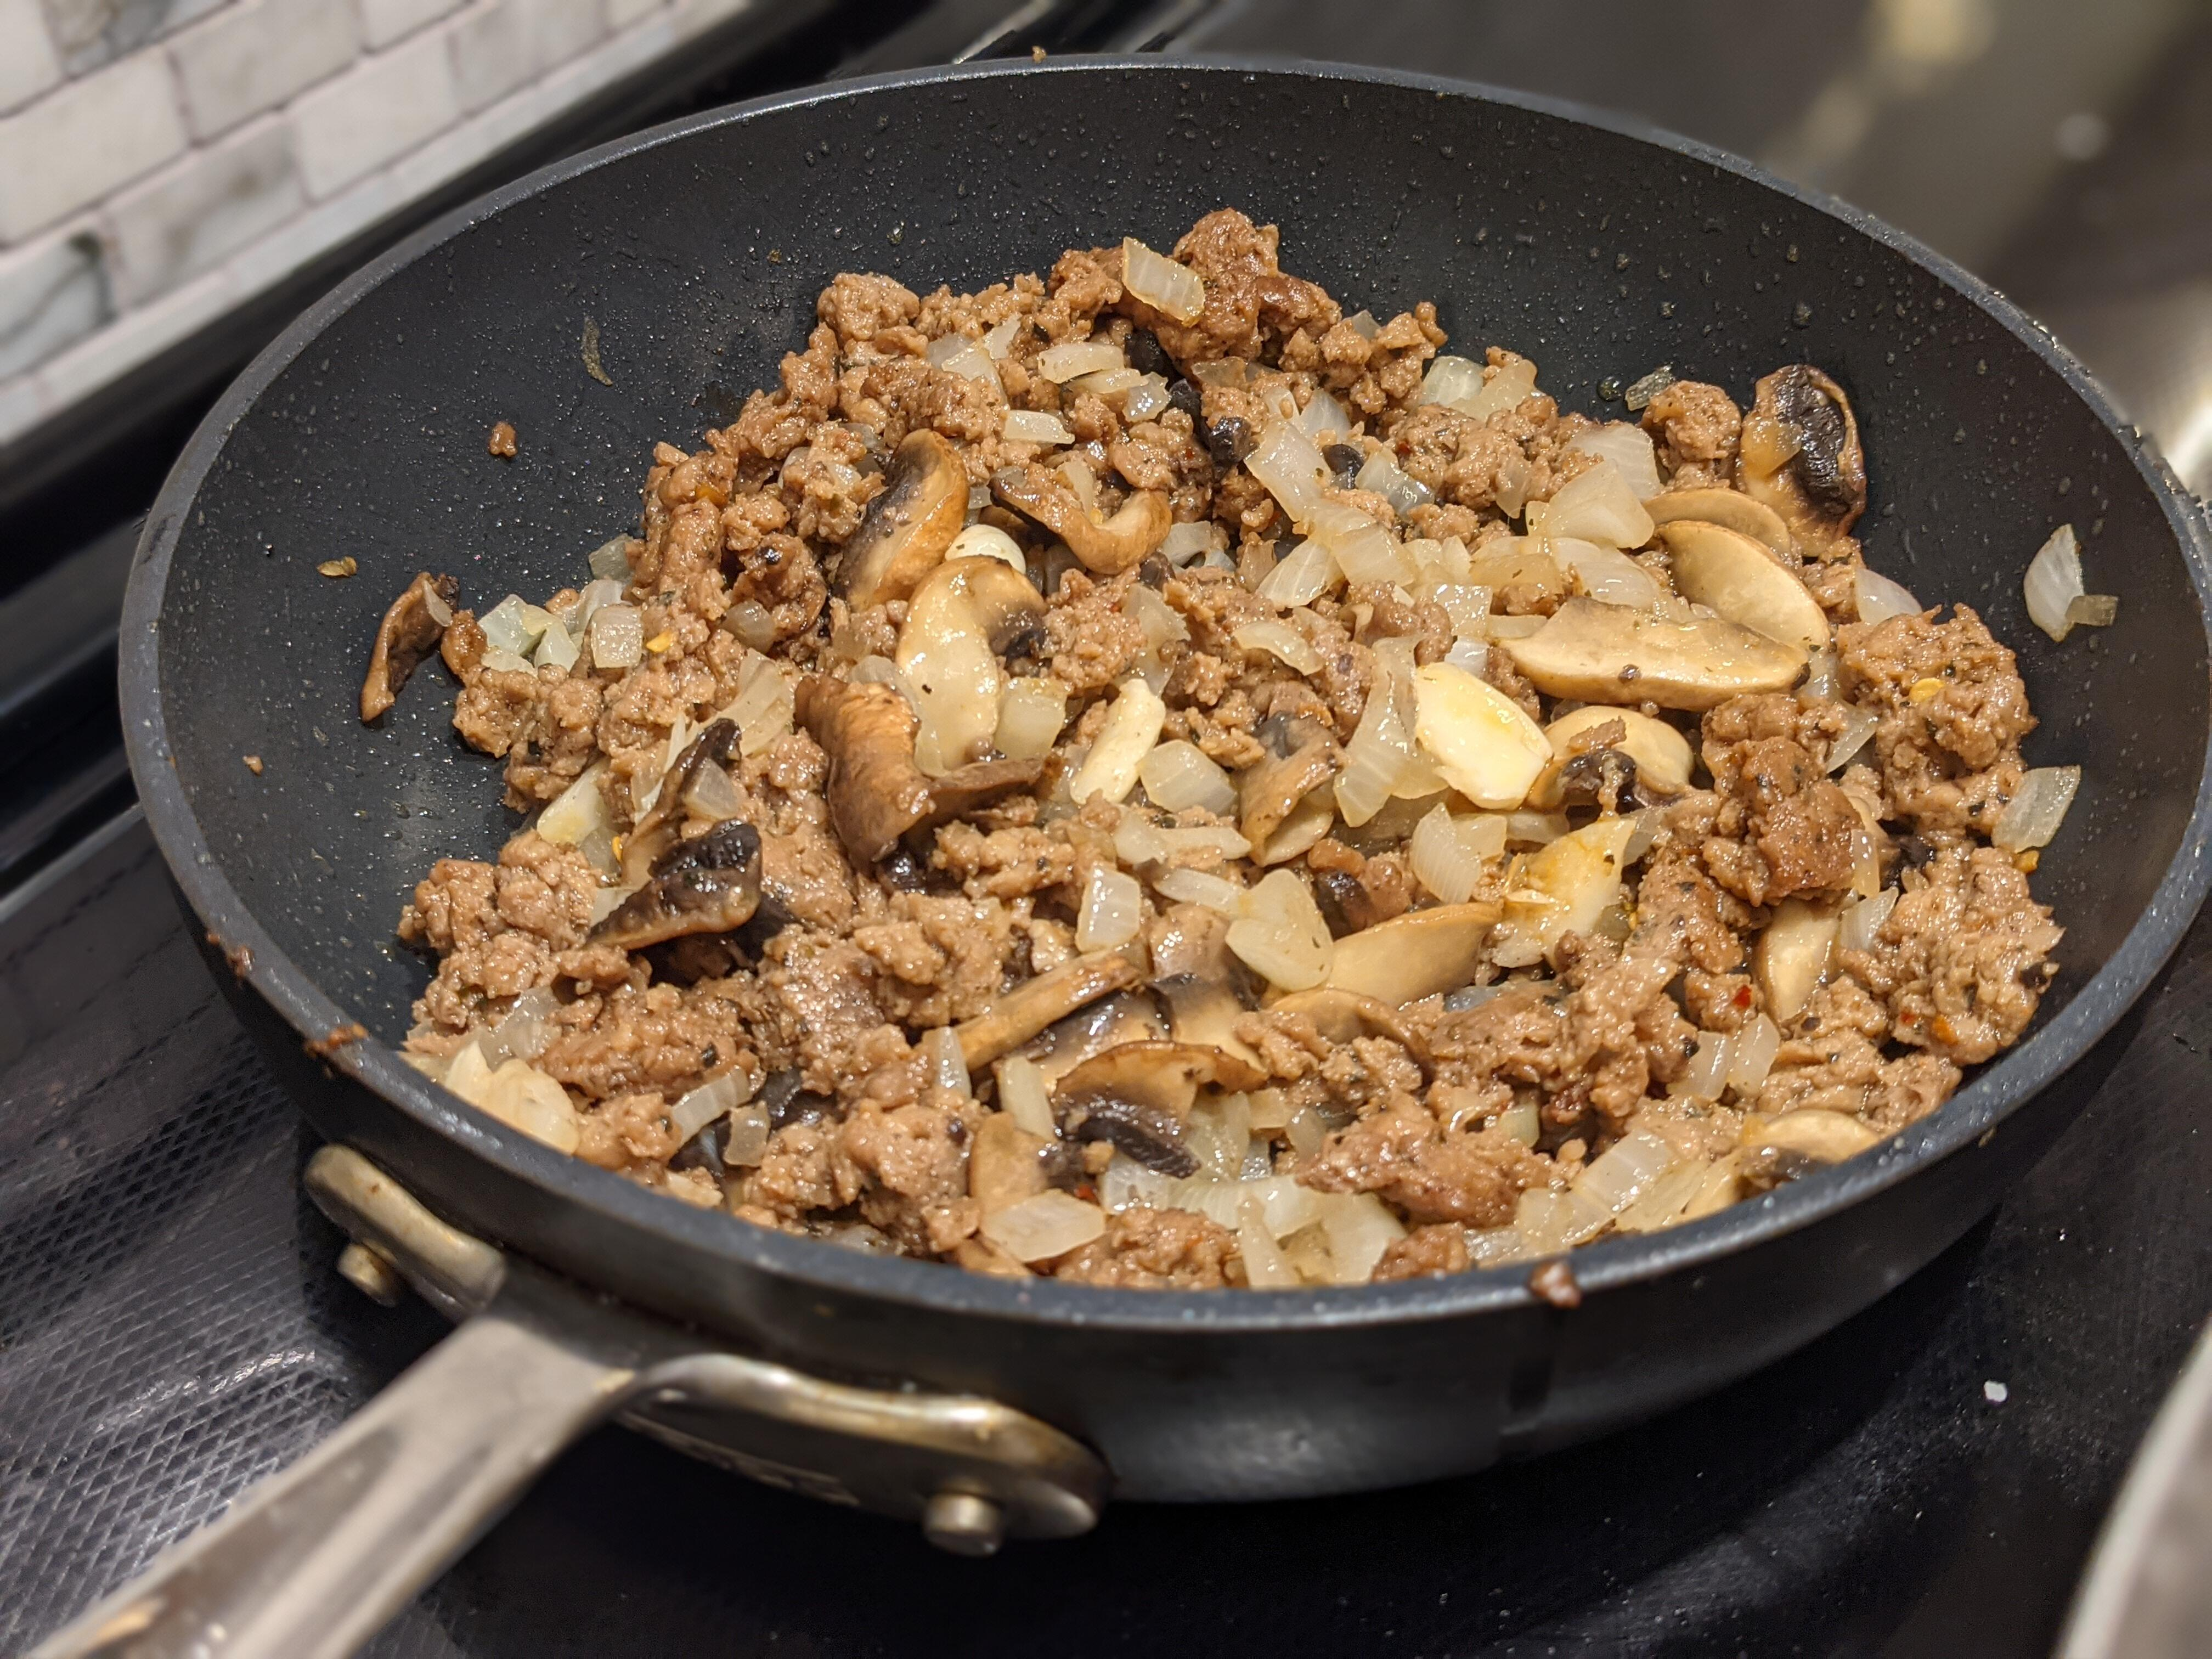 Impossible Sausage browning in a pan